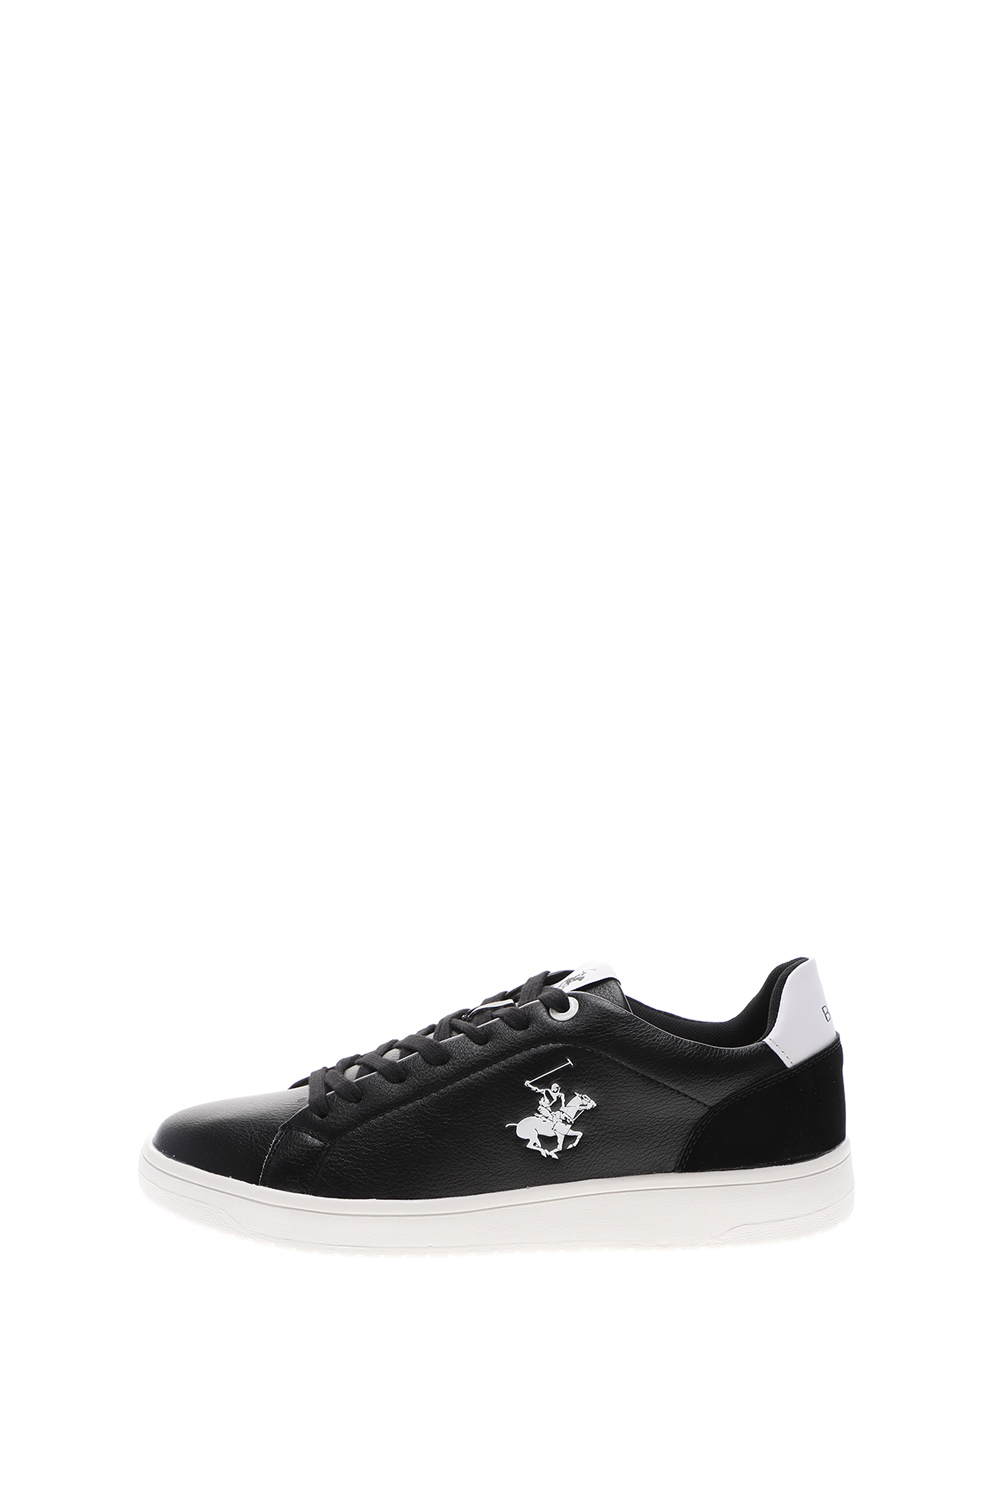 BEVERLY HILLS POLO CLUB – Ανδρικά sneakers BEVERLY HILLS POLO CLUB μαύρα